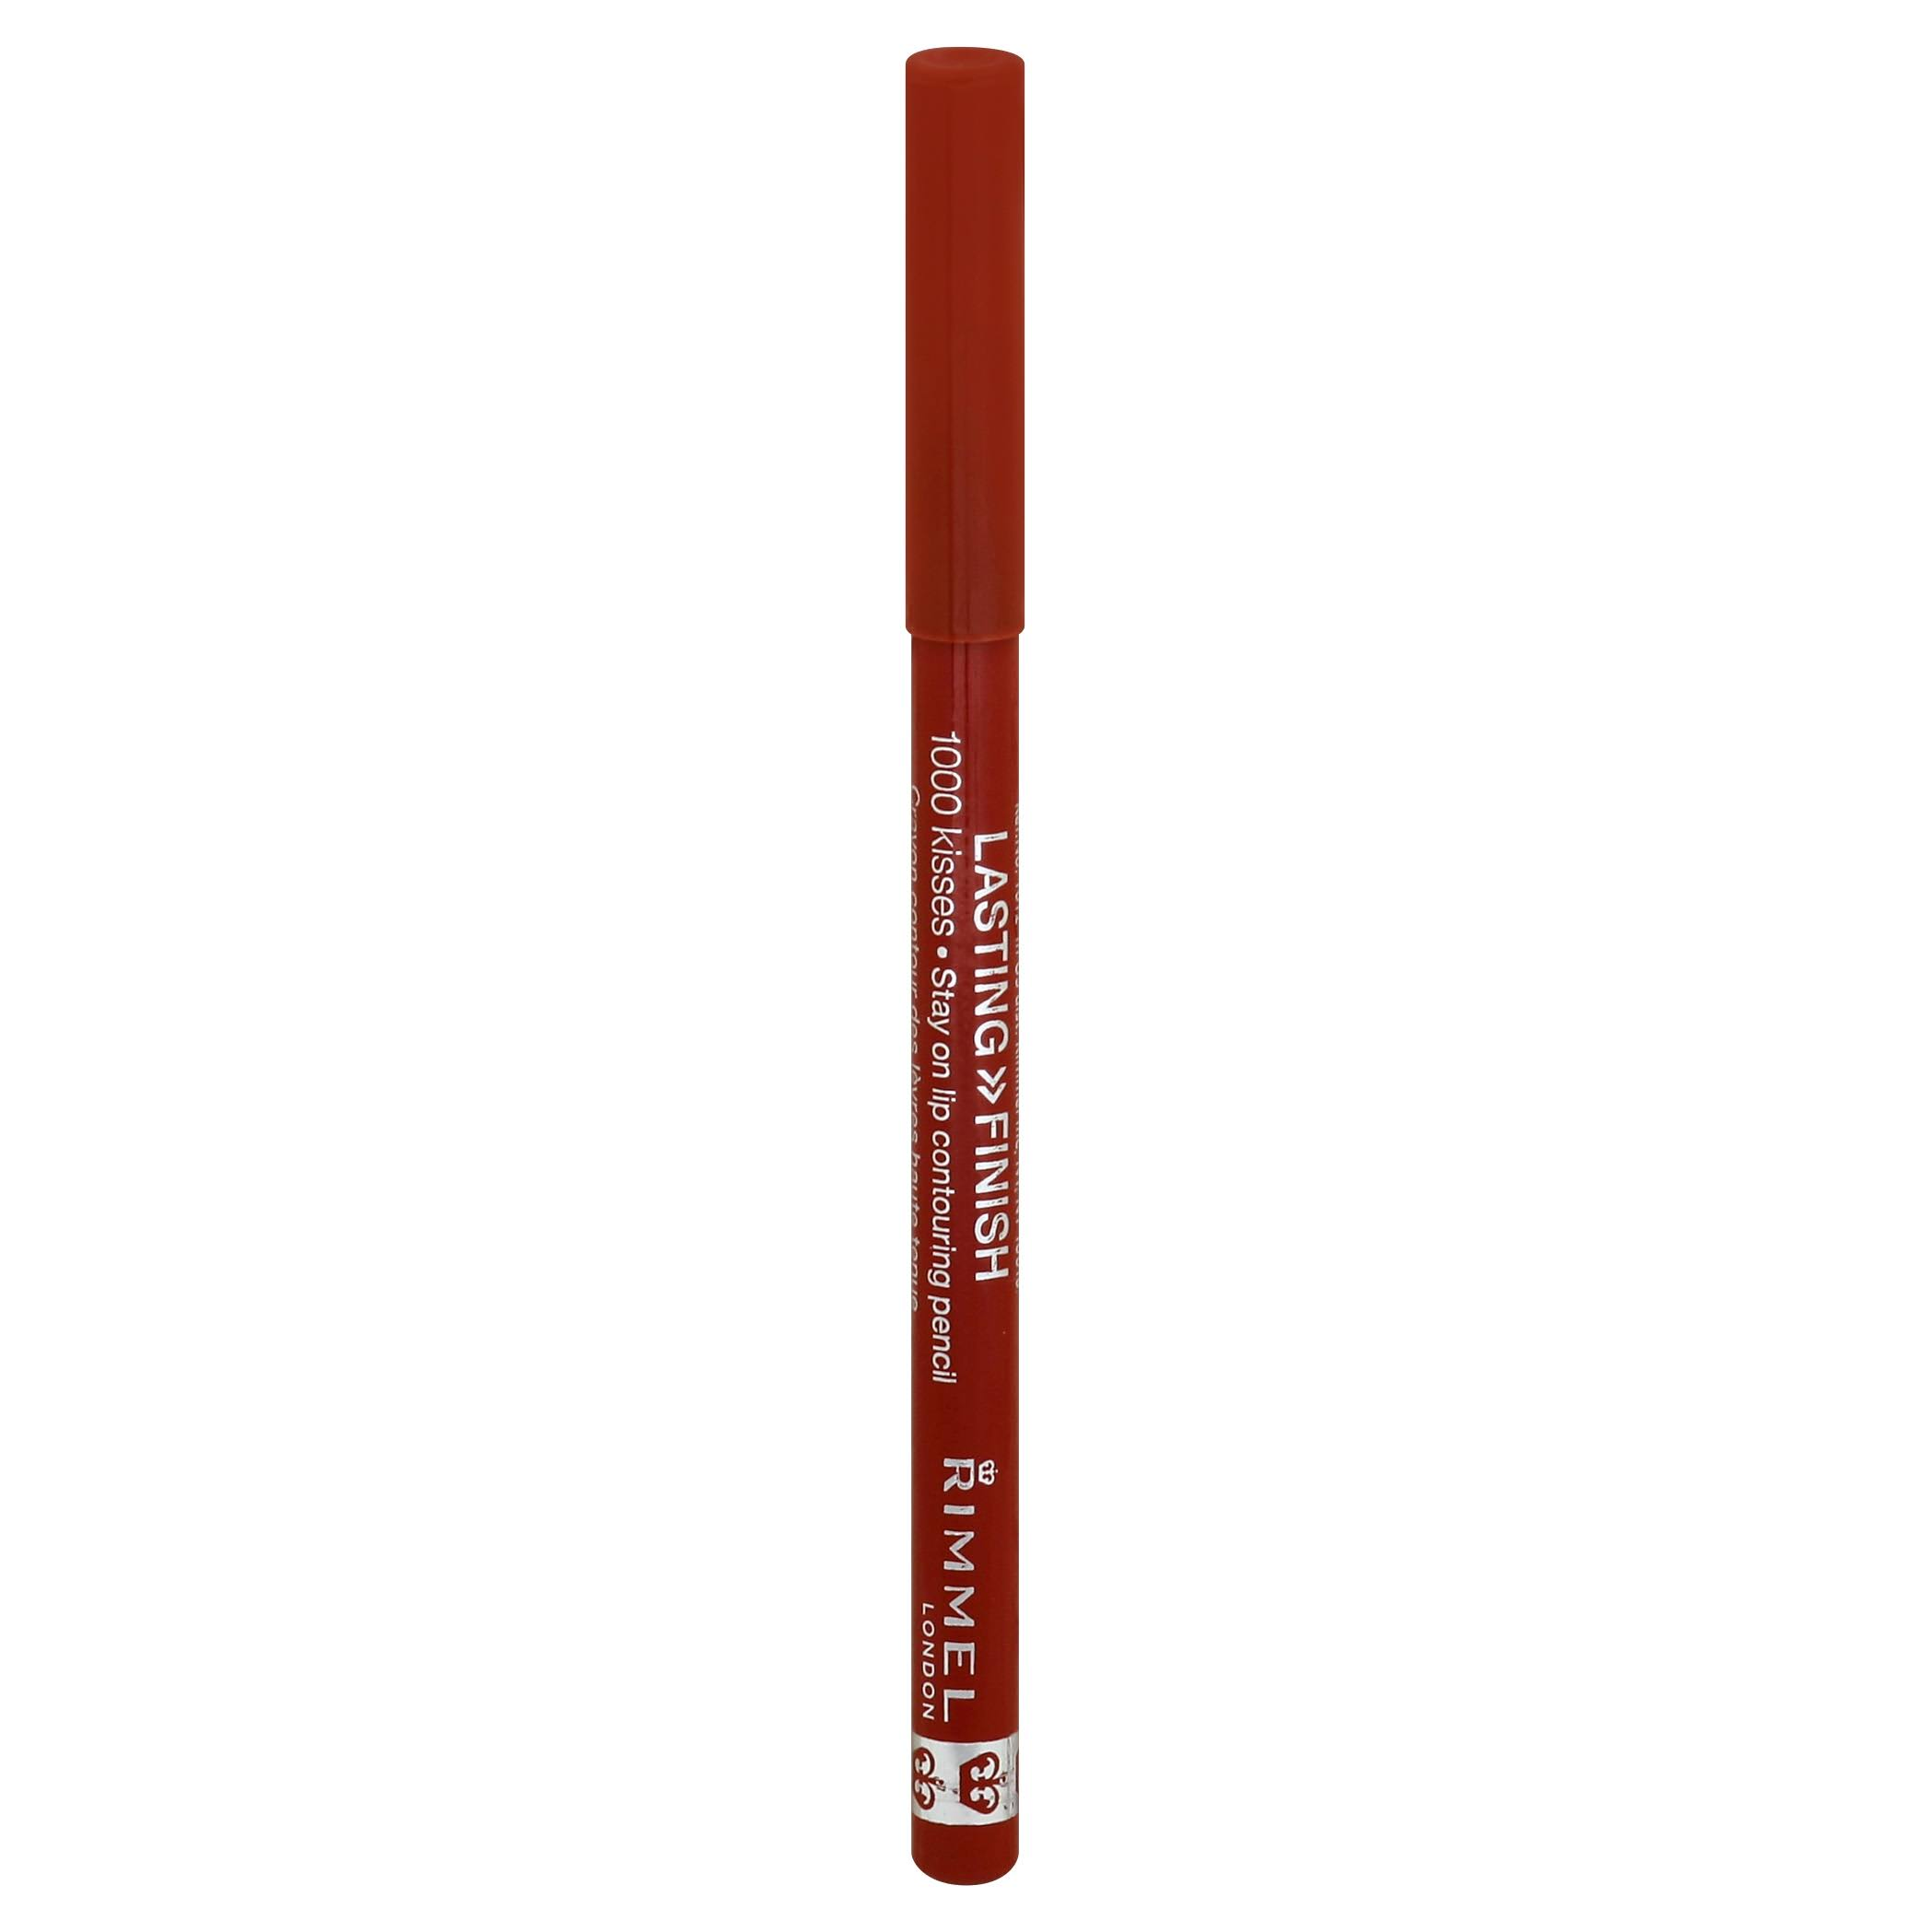 Rimmel 1000 Kisses Lip Liner - 011 Spice